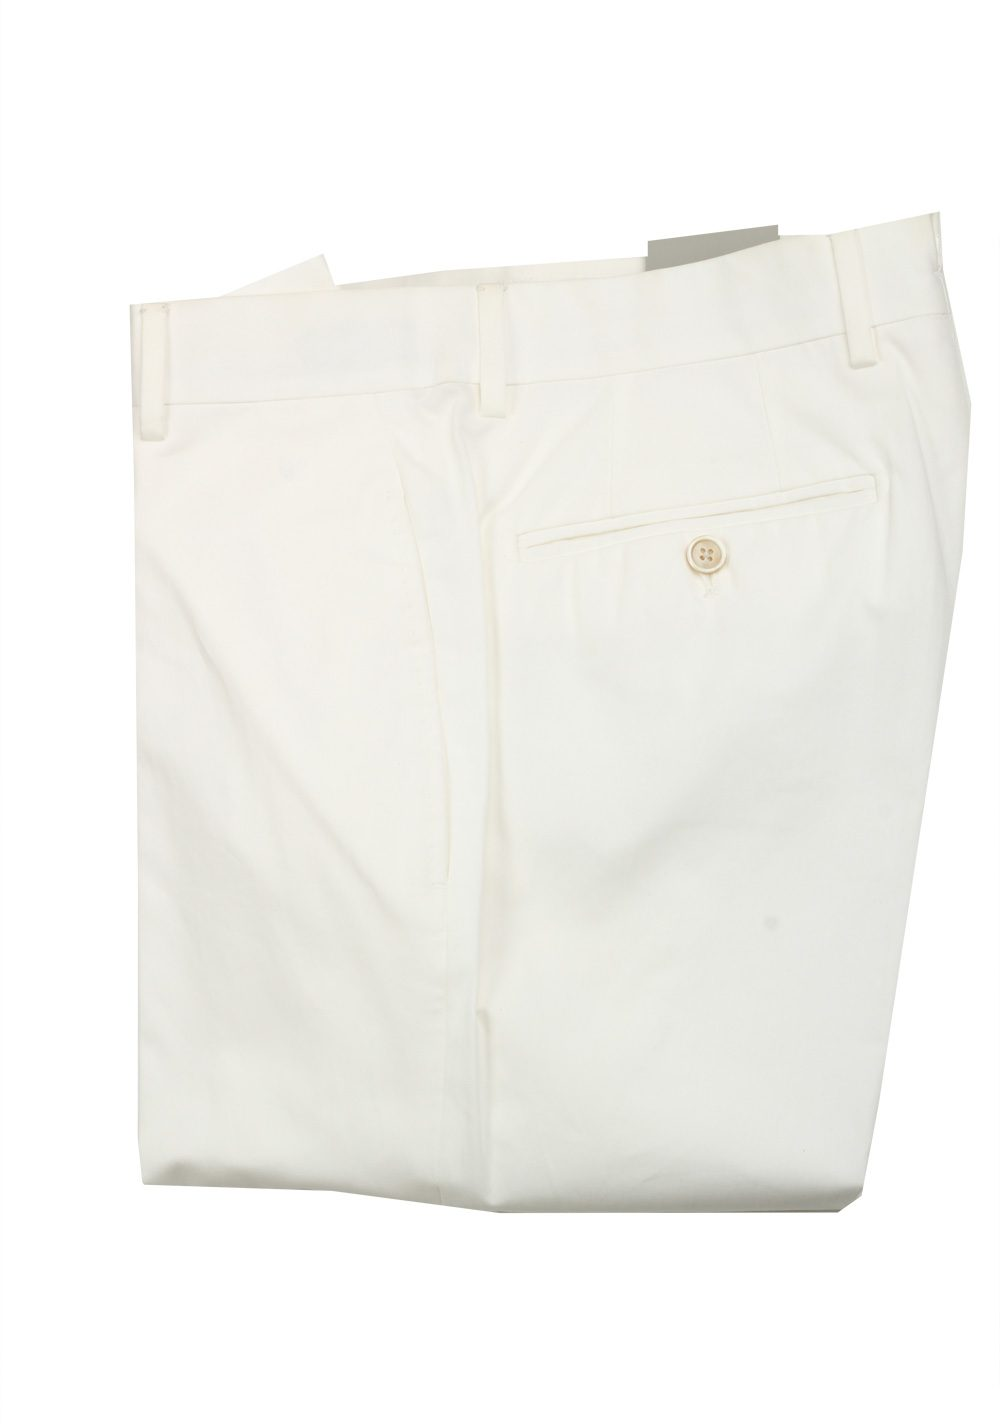 TOM FORD White Cotton Trousers Size 50 / 34 U.S. | Costume Limité